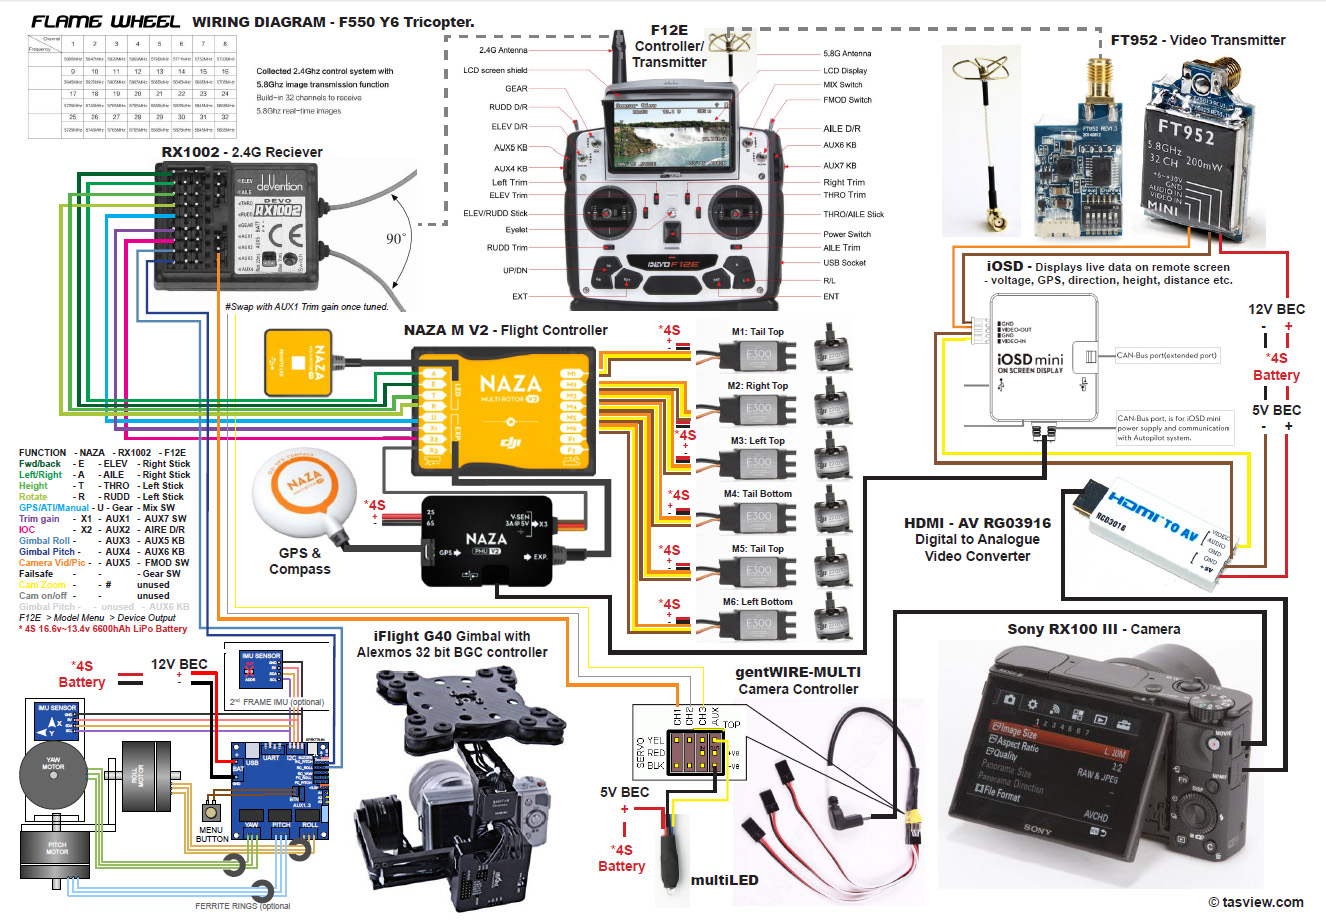 wiring_diagram f550y6 f500, rx100, g40 wiring tasview phantom 2 wiring diagram at mifinder.co